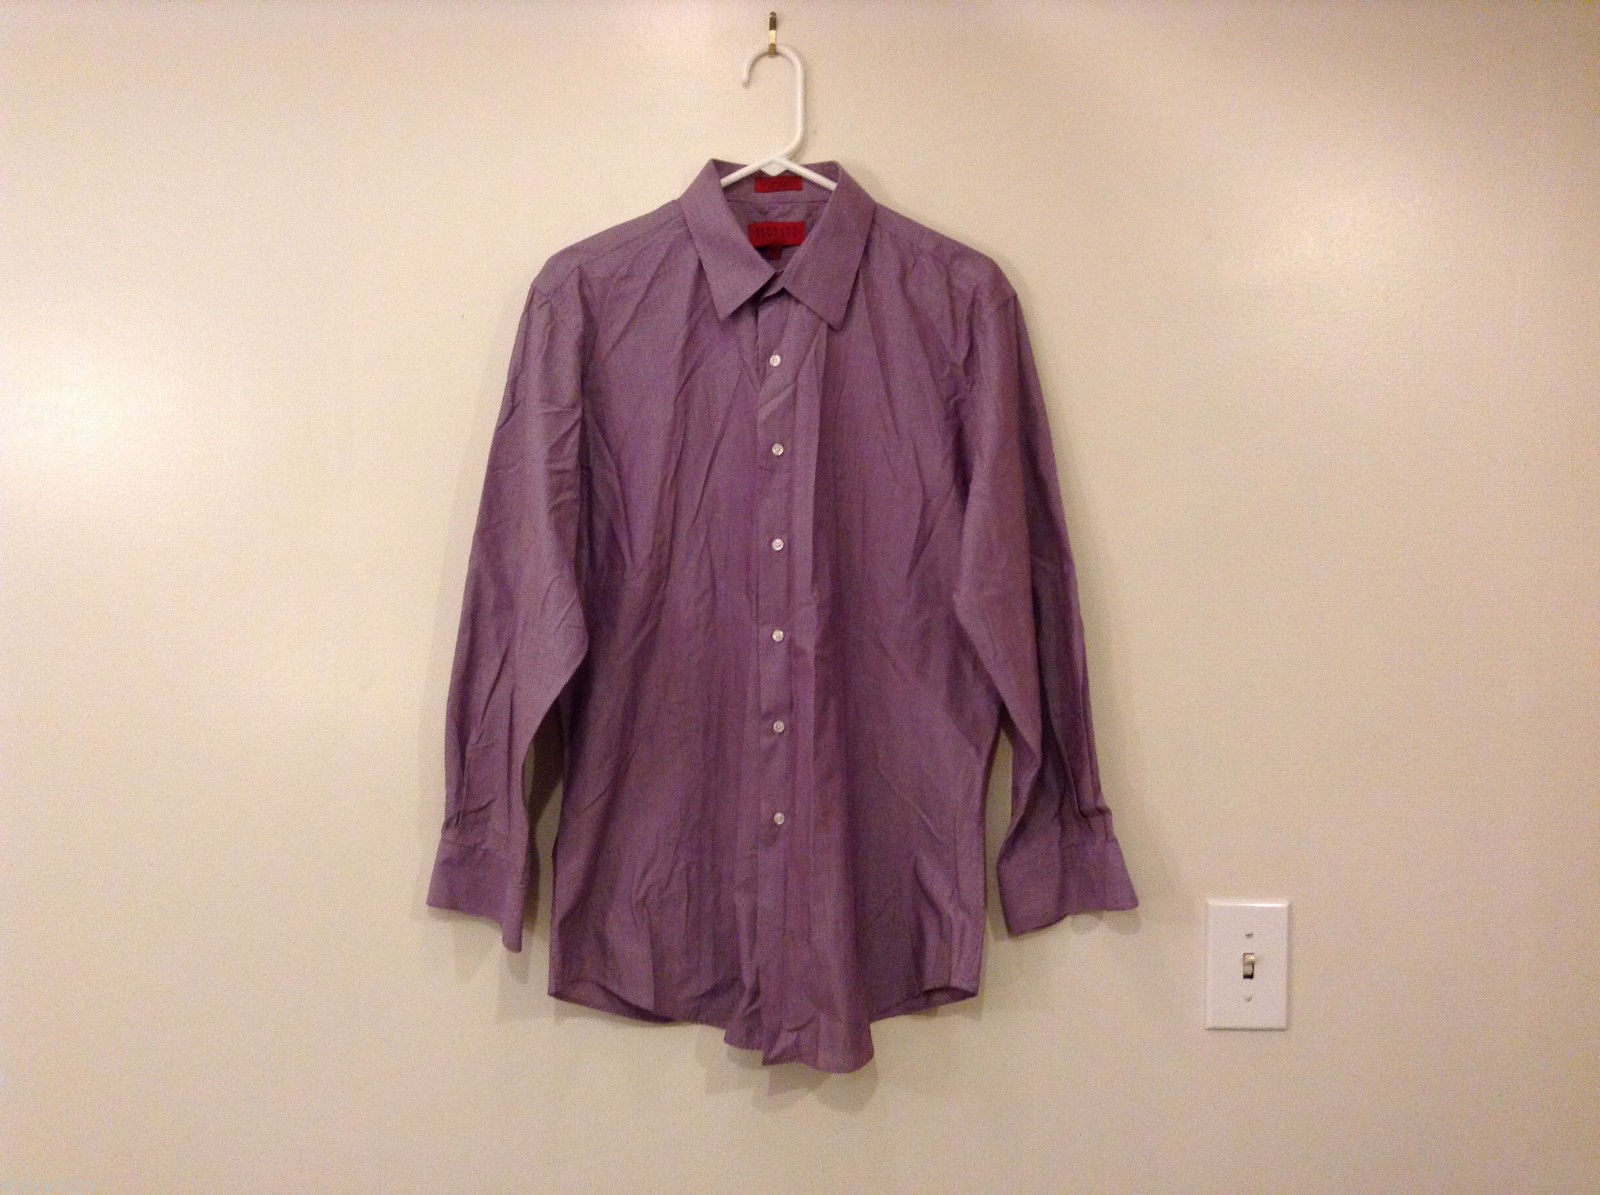 Bergamo New York Men's Size L (16-16.5 32-33) Purple Stripe Business Dress Shirt